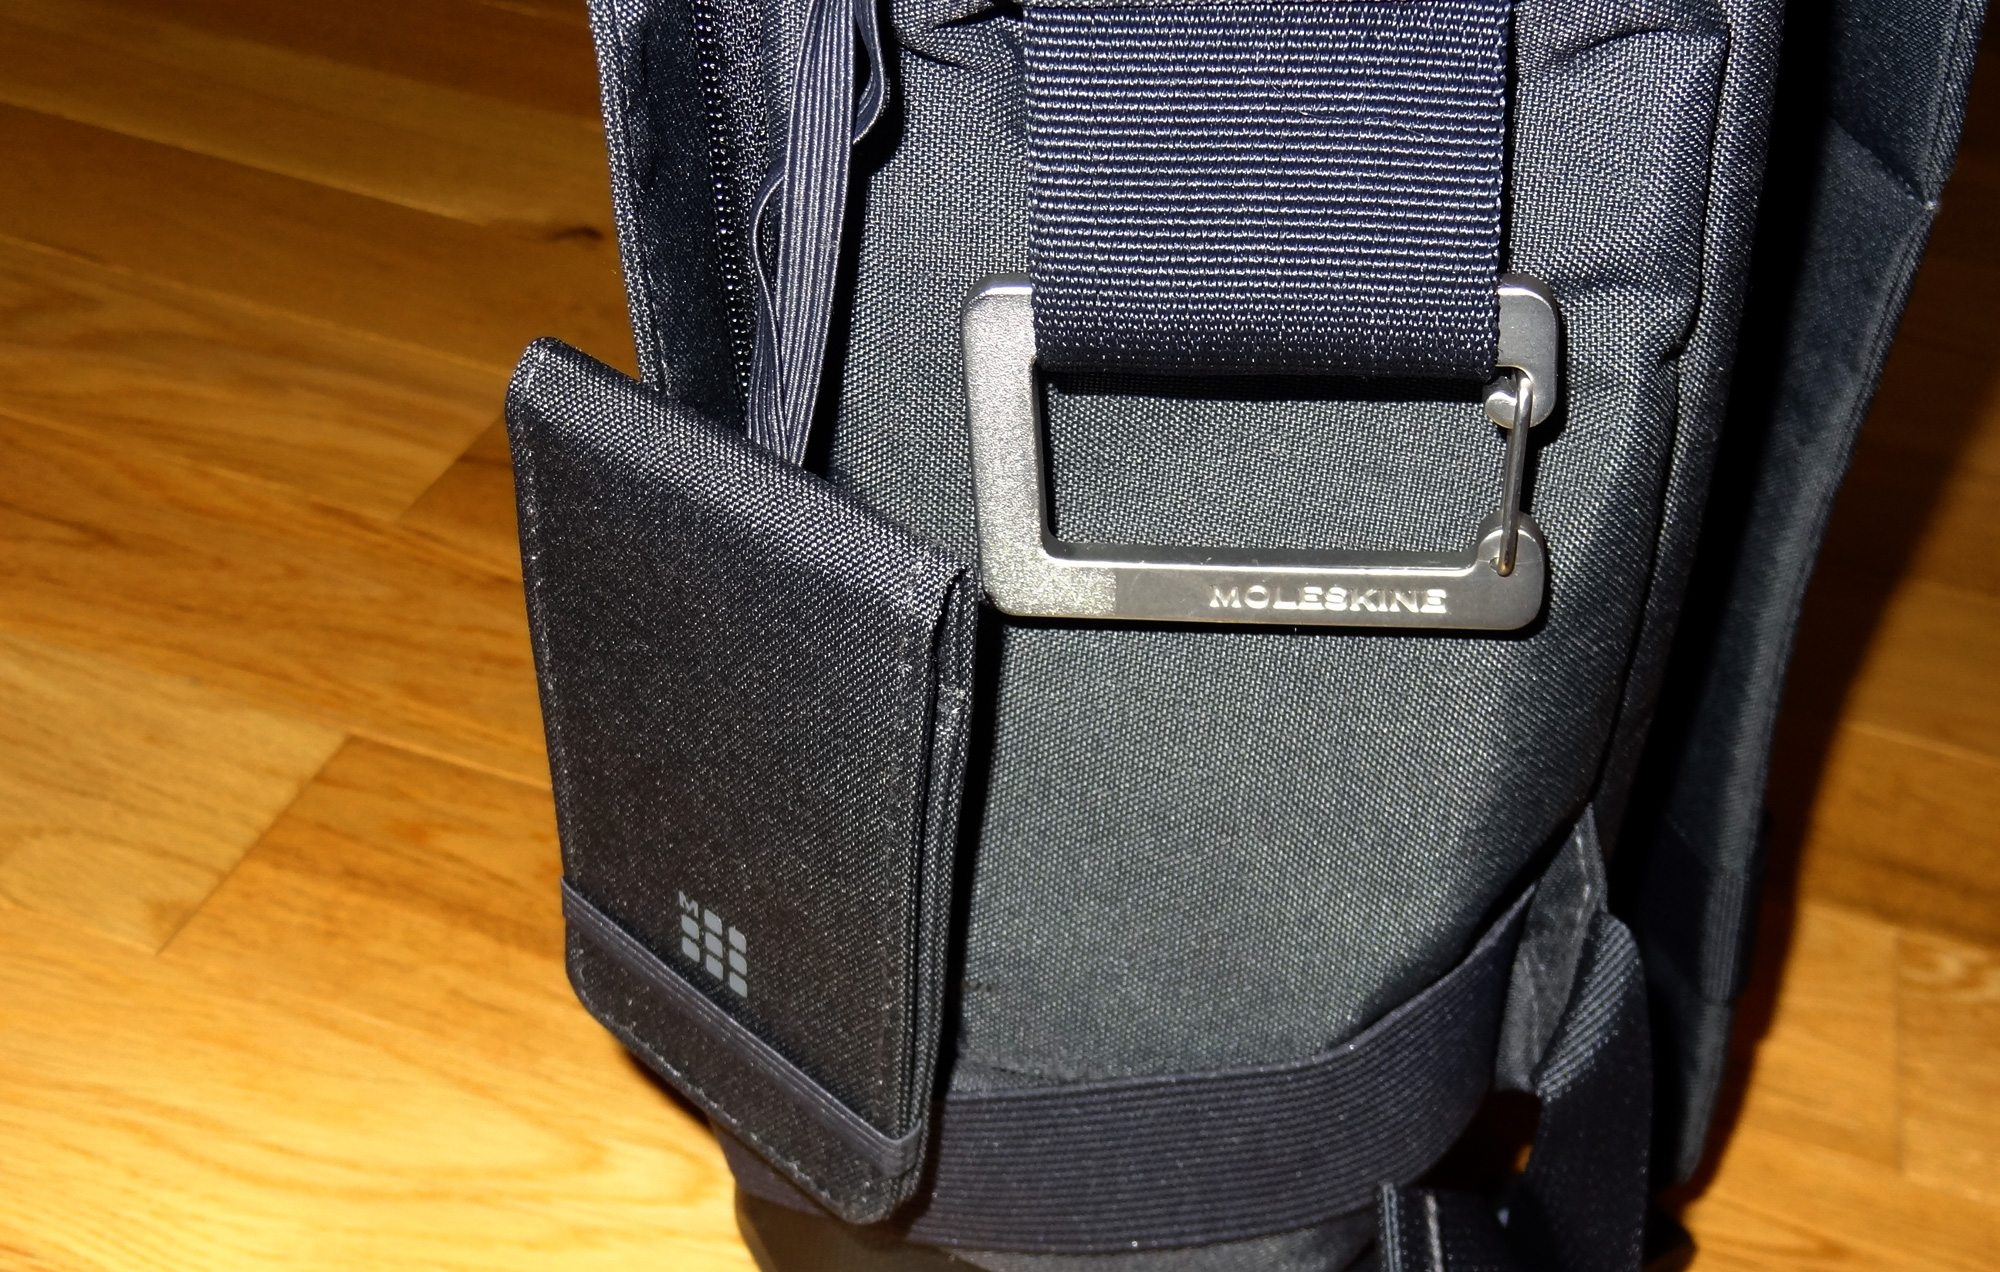 Moleskine Bag